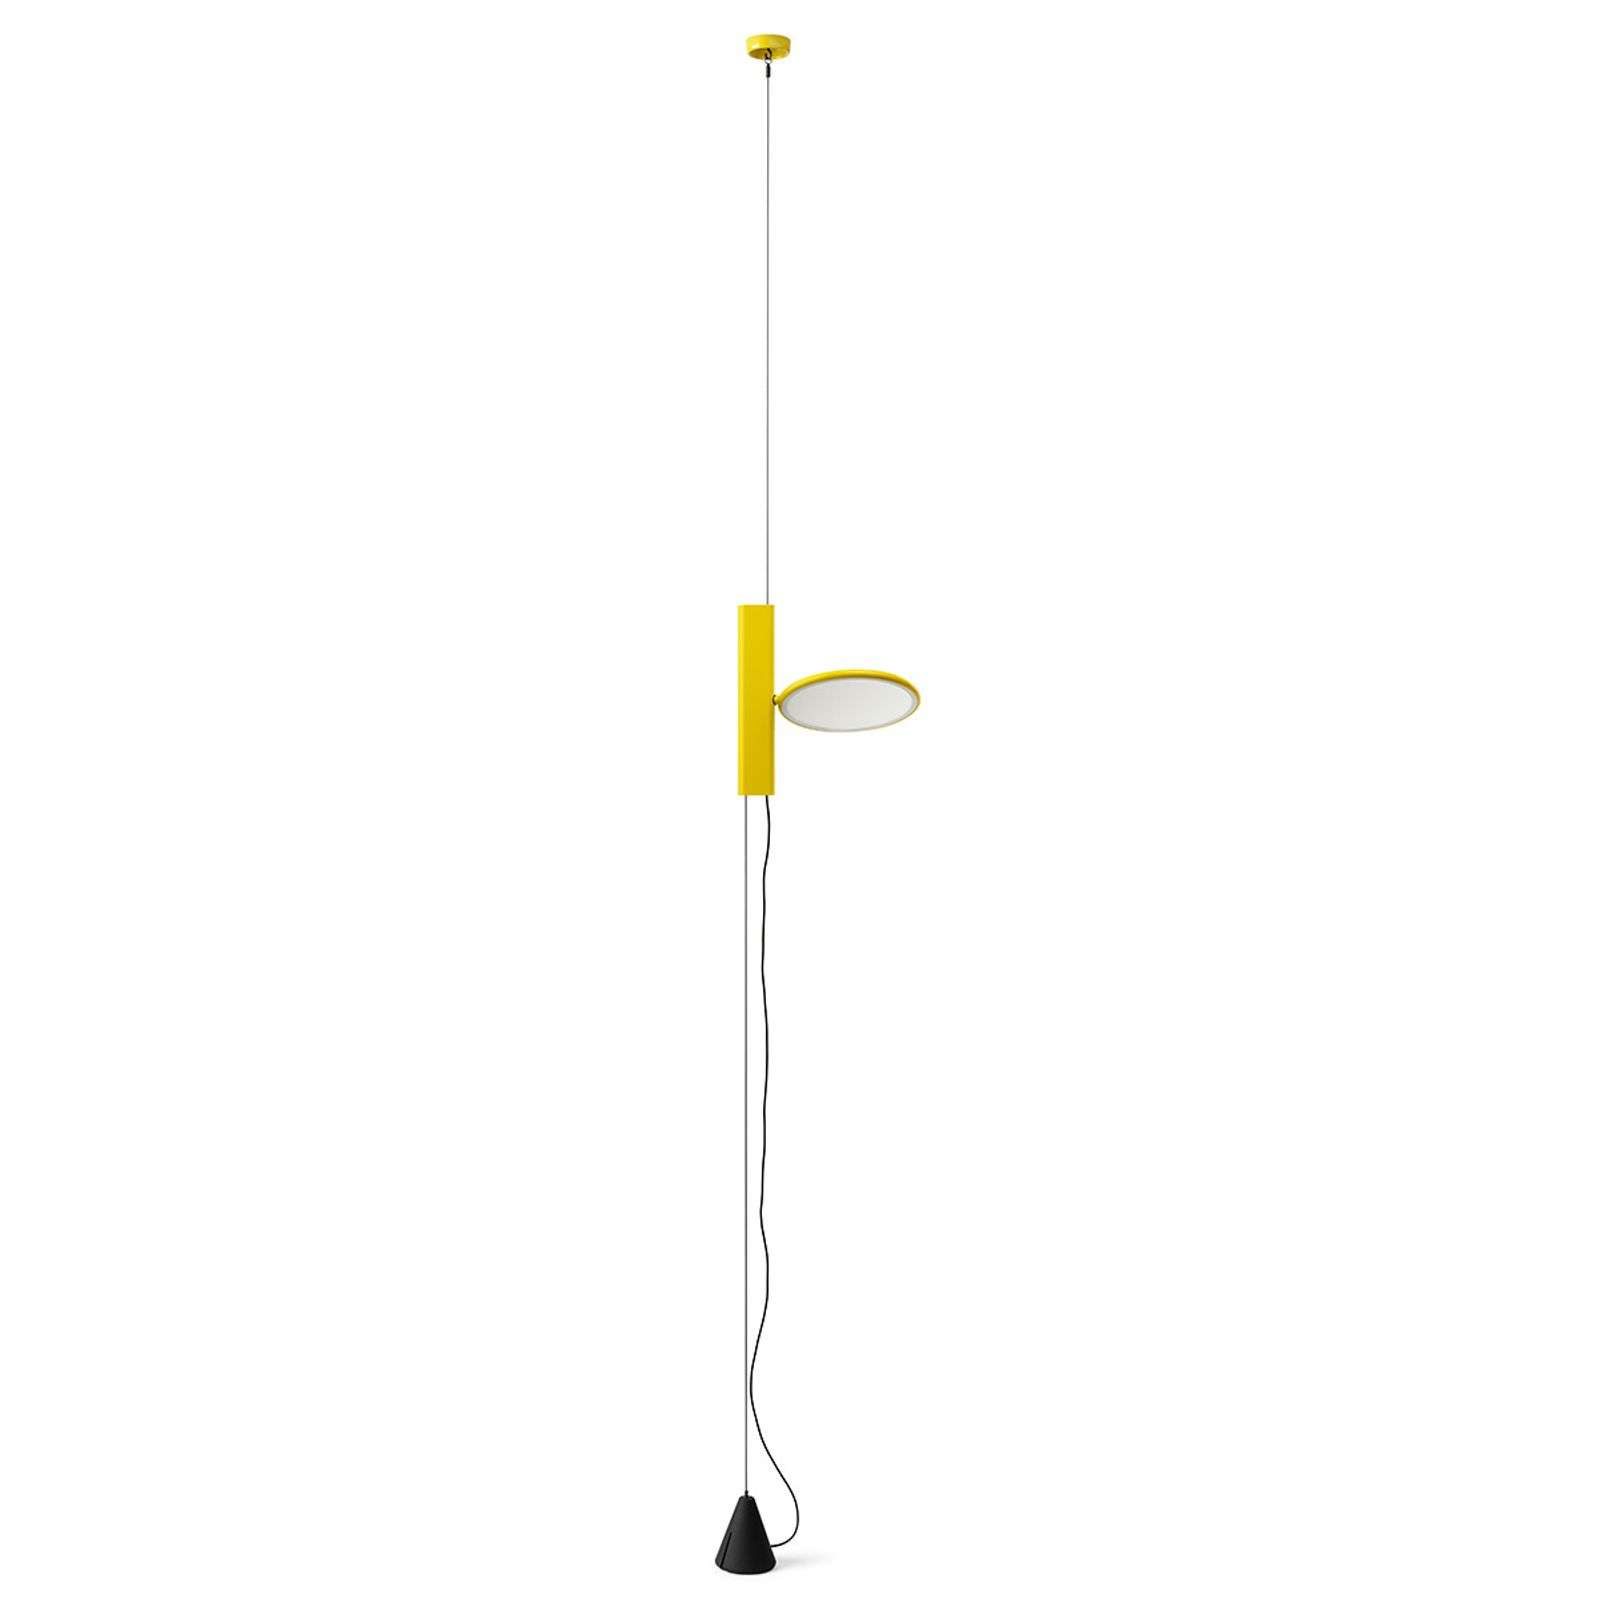 Suspension LED verticale OK en jaune